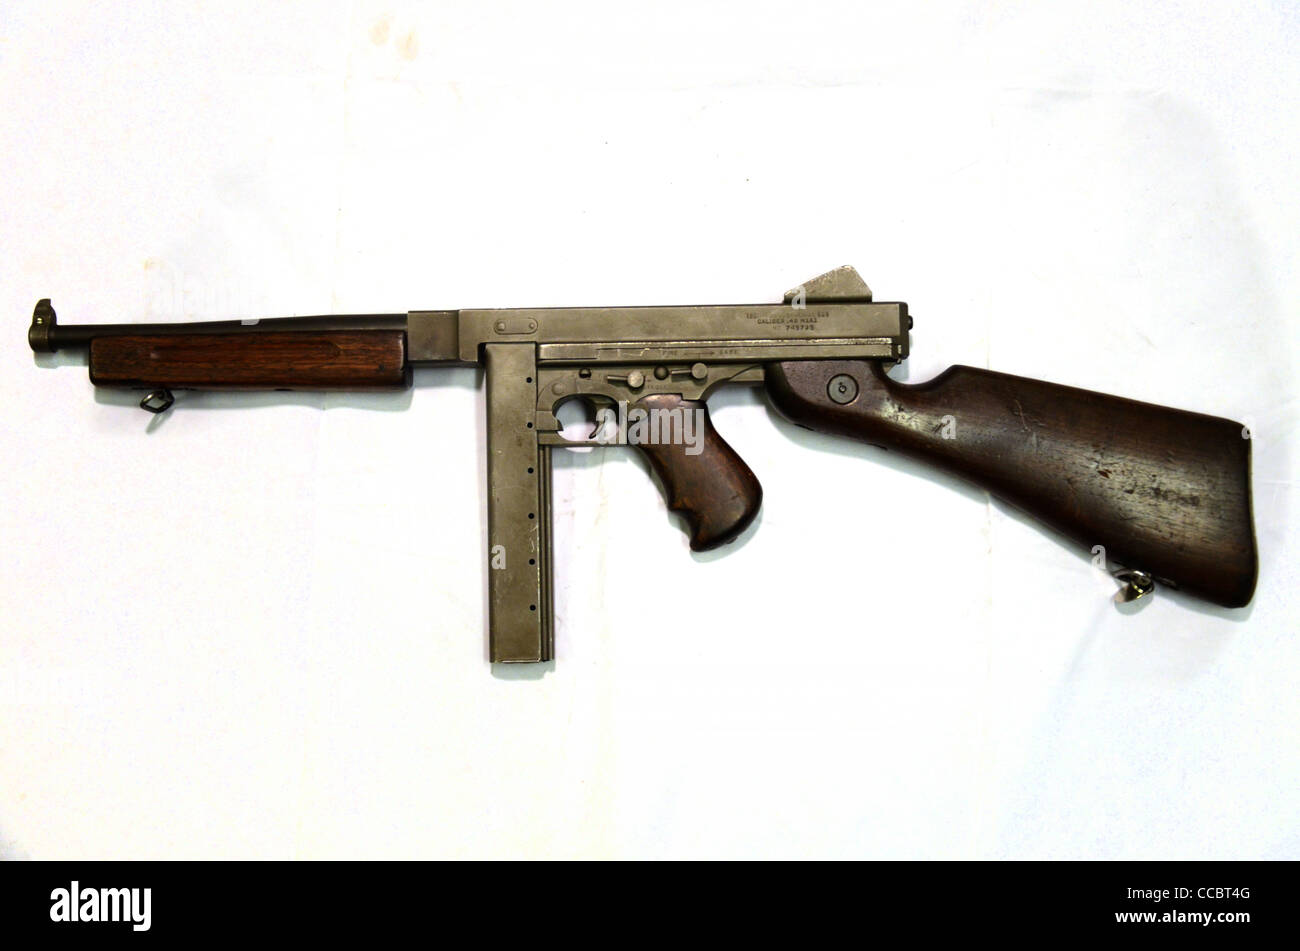 Ppsh 41 Diagram Magazine Wiring Diagrams For Dummies Sks Schematic Submachine Stock Photos Images Alamy Pps 43 Schematics